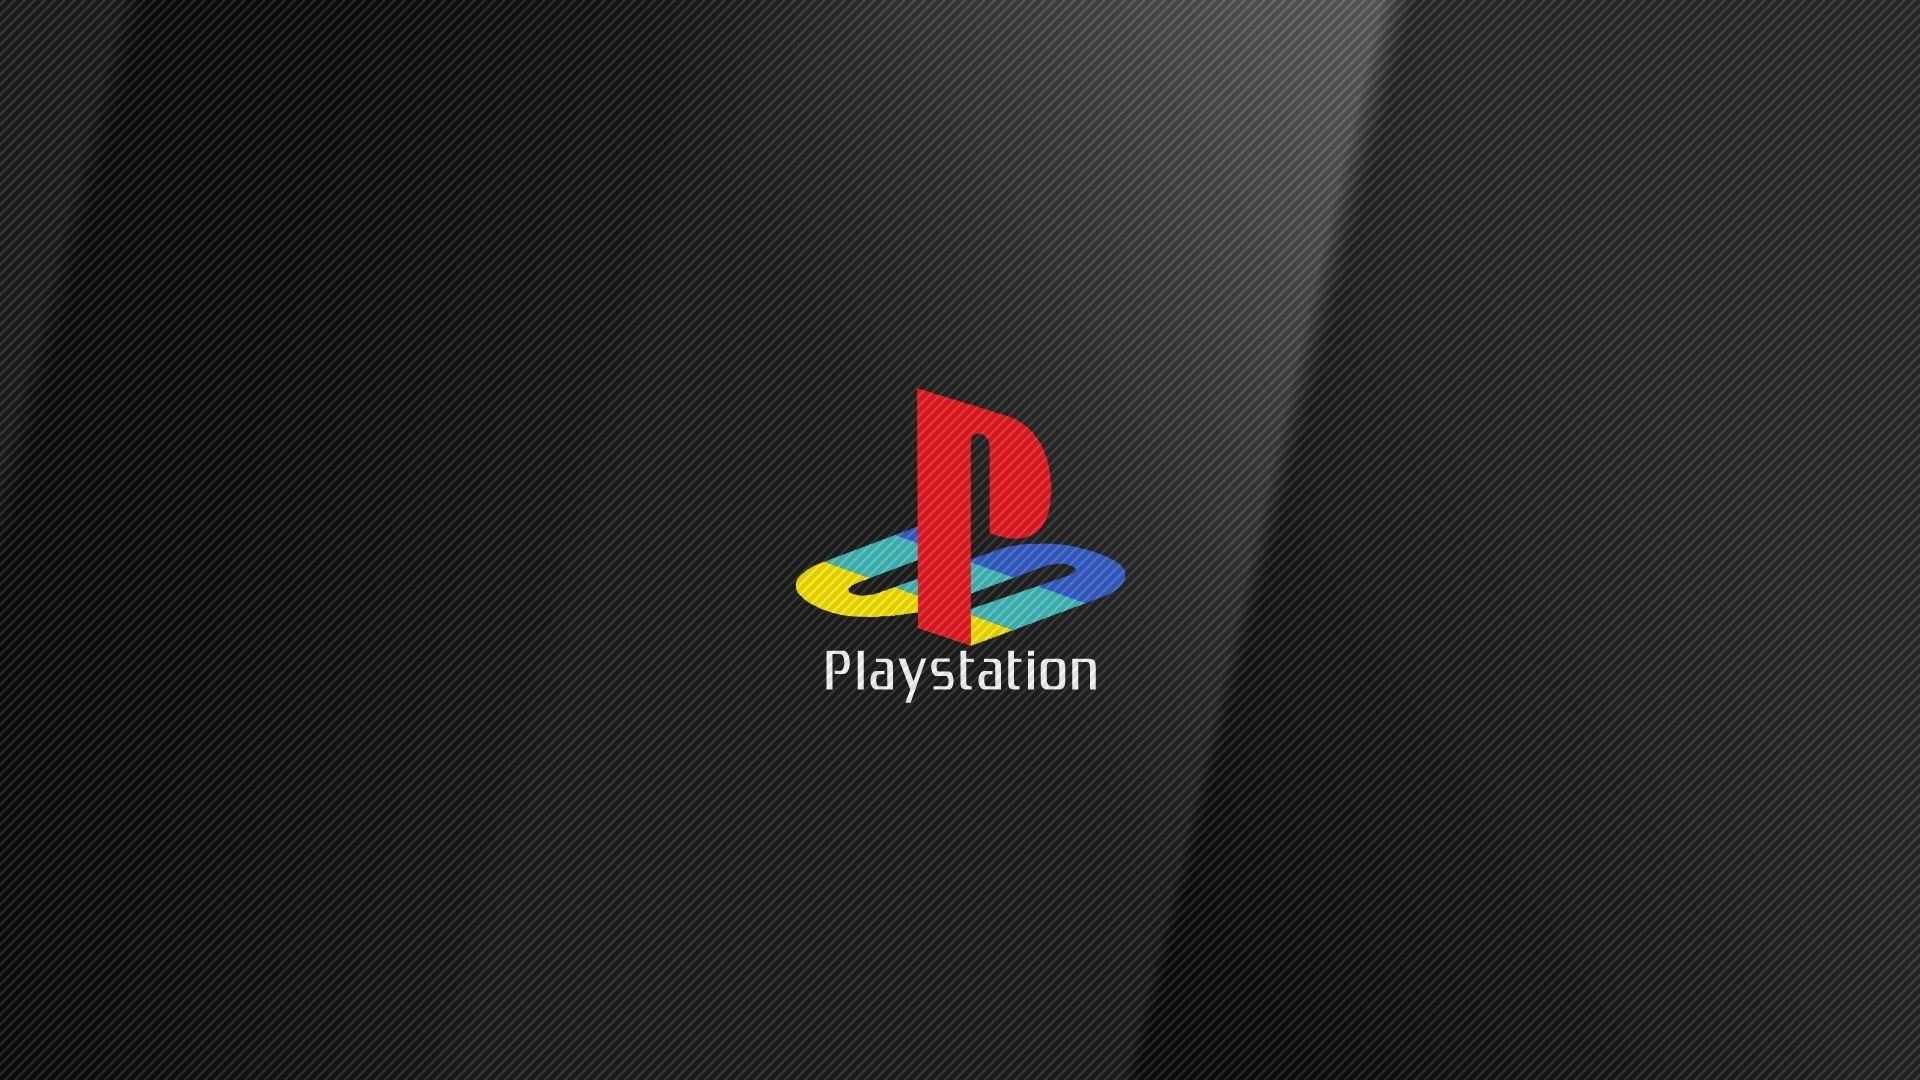 Ps4 Logo Wallpaper 87 Images